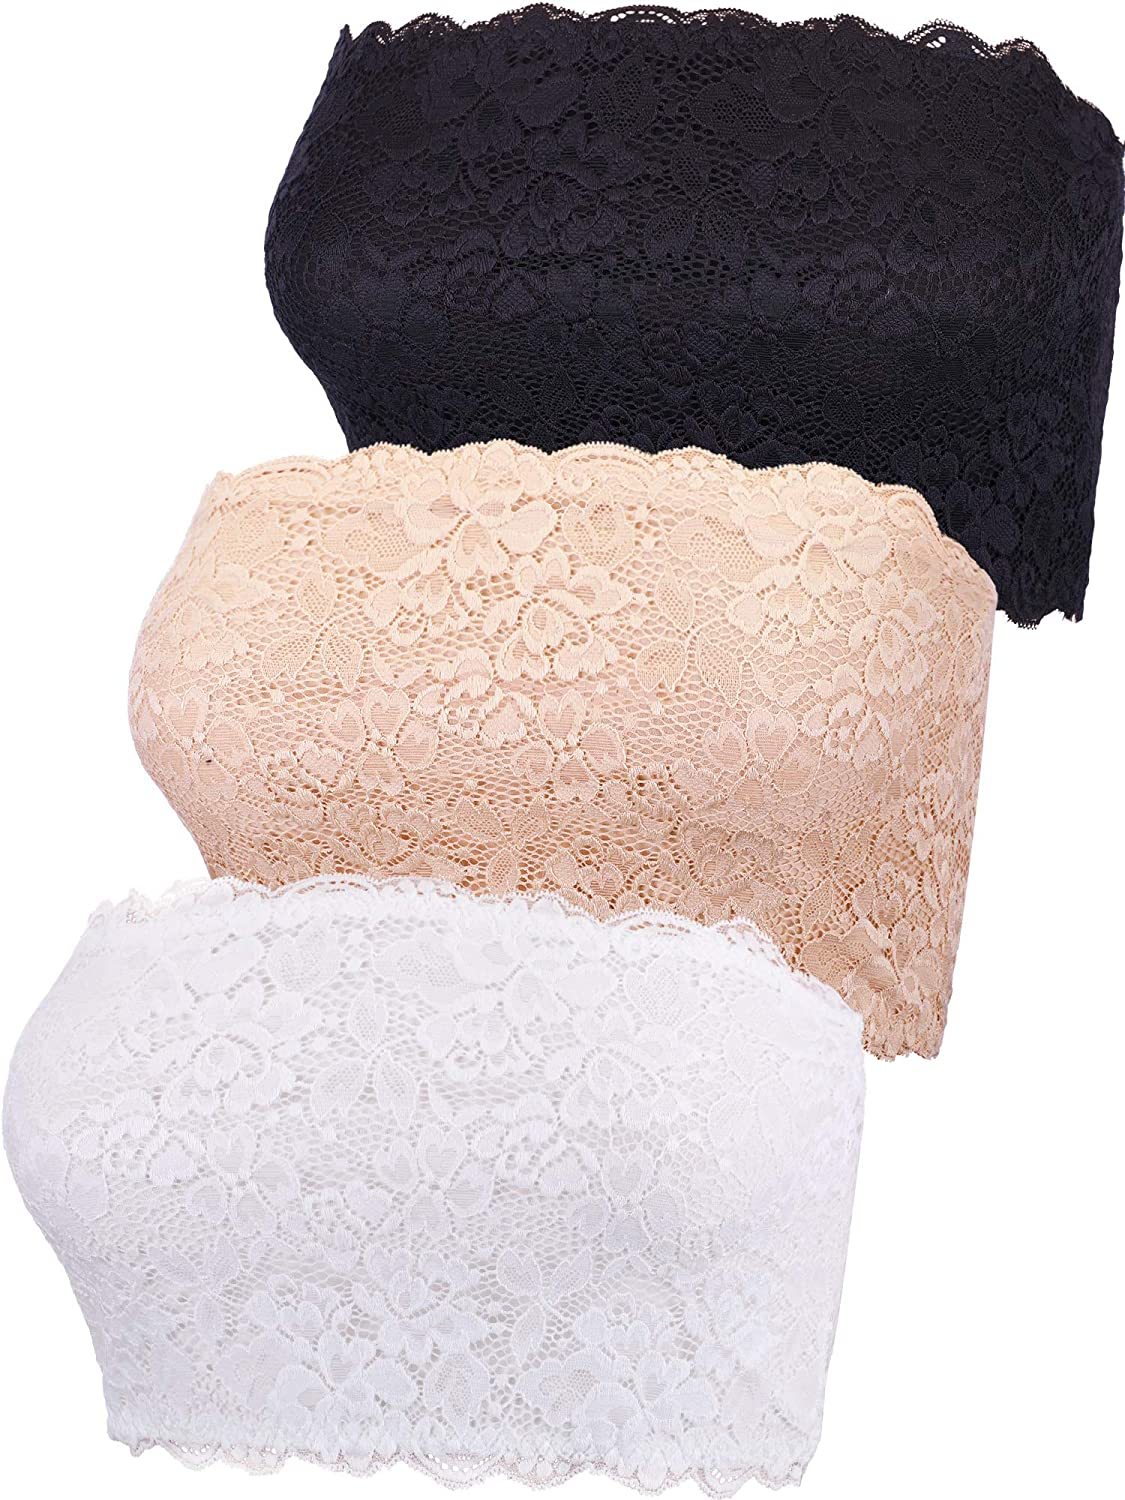 Boao 3 Pieces Women's Floral Lace Tube Top Bra Bandeau Strapless Bras Seamless Stretchy Chest Wrap